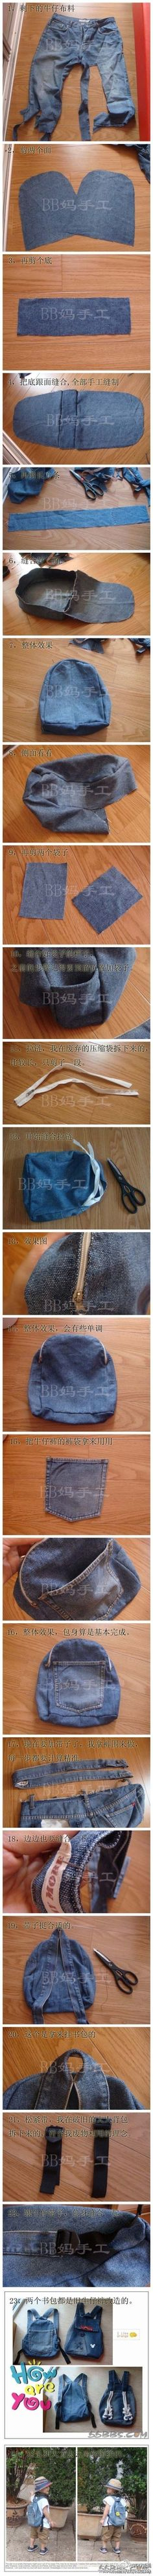 mochila jeans. old jean backpack